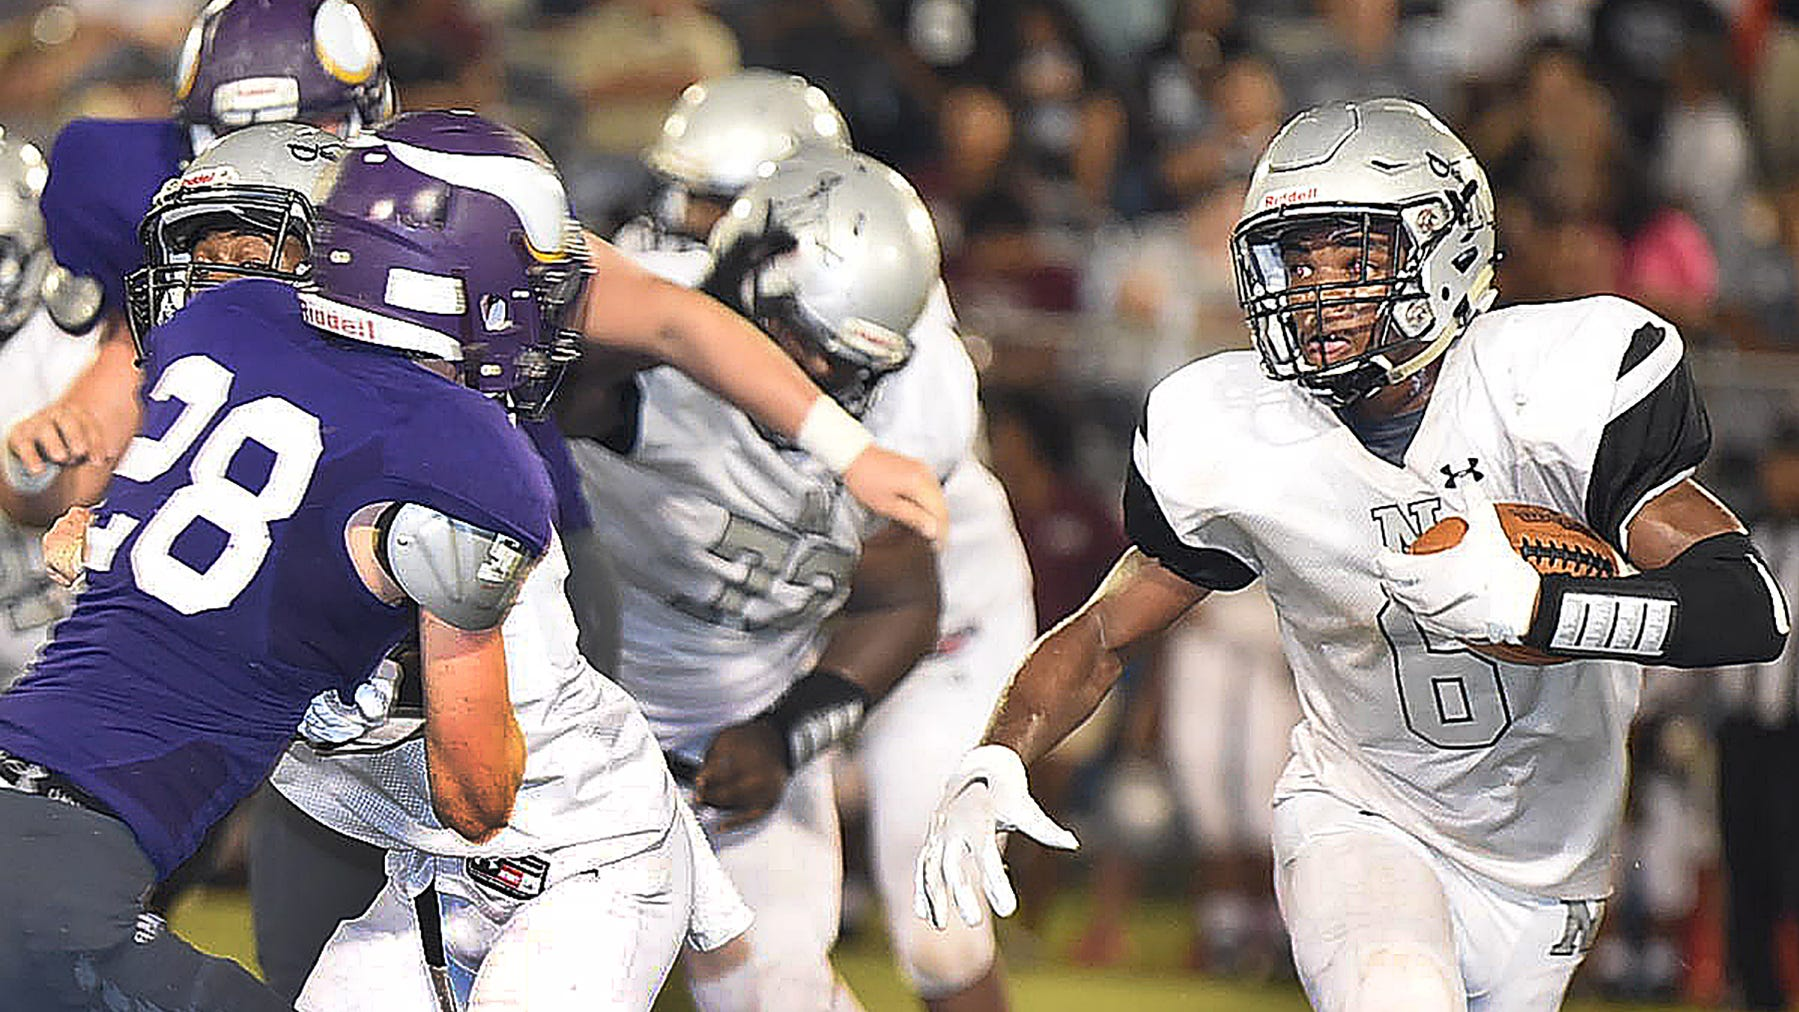 Northwest comes out on top of quarterback duel with Opelousas Catholic